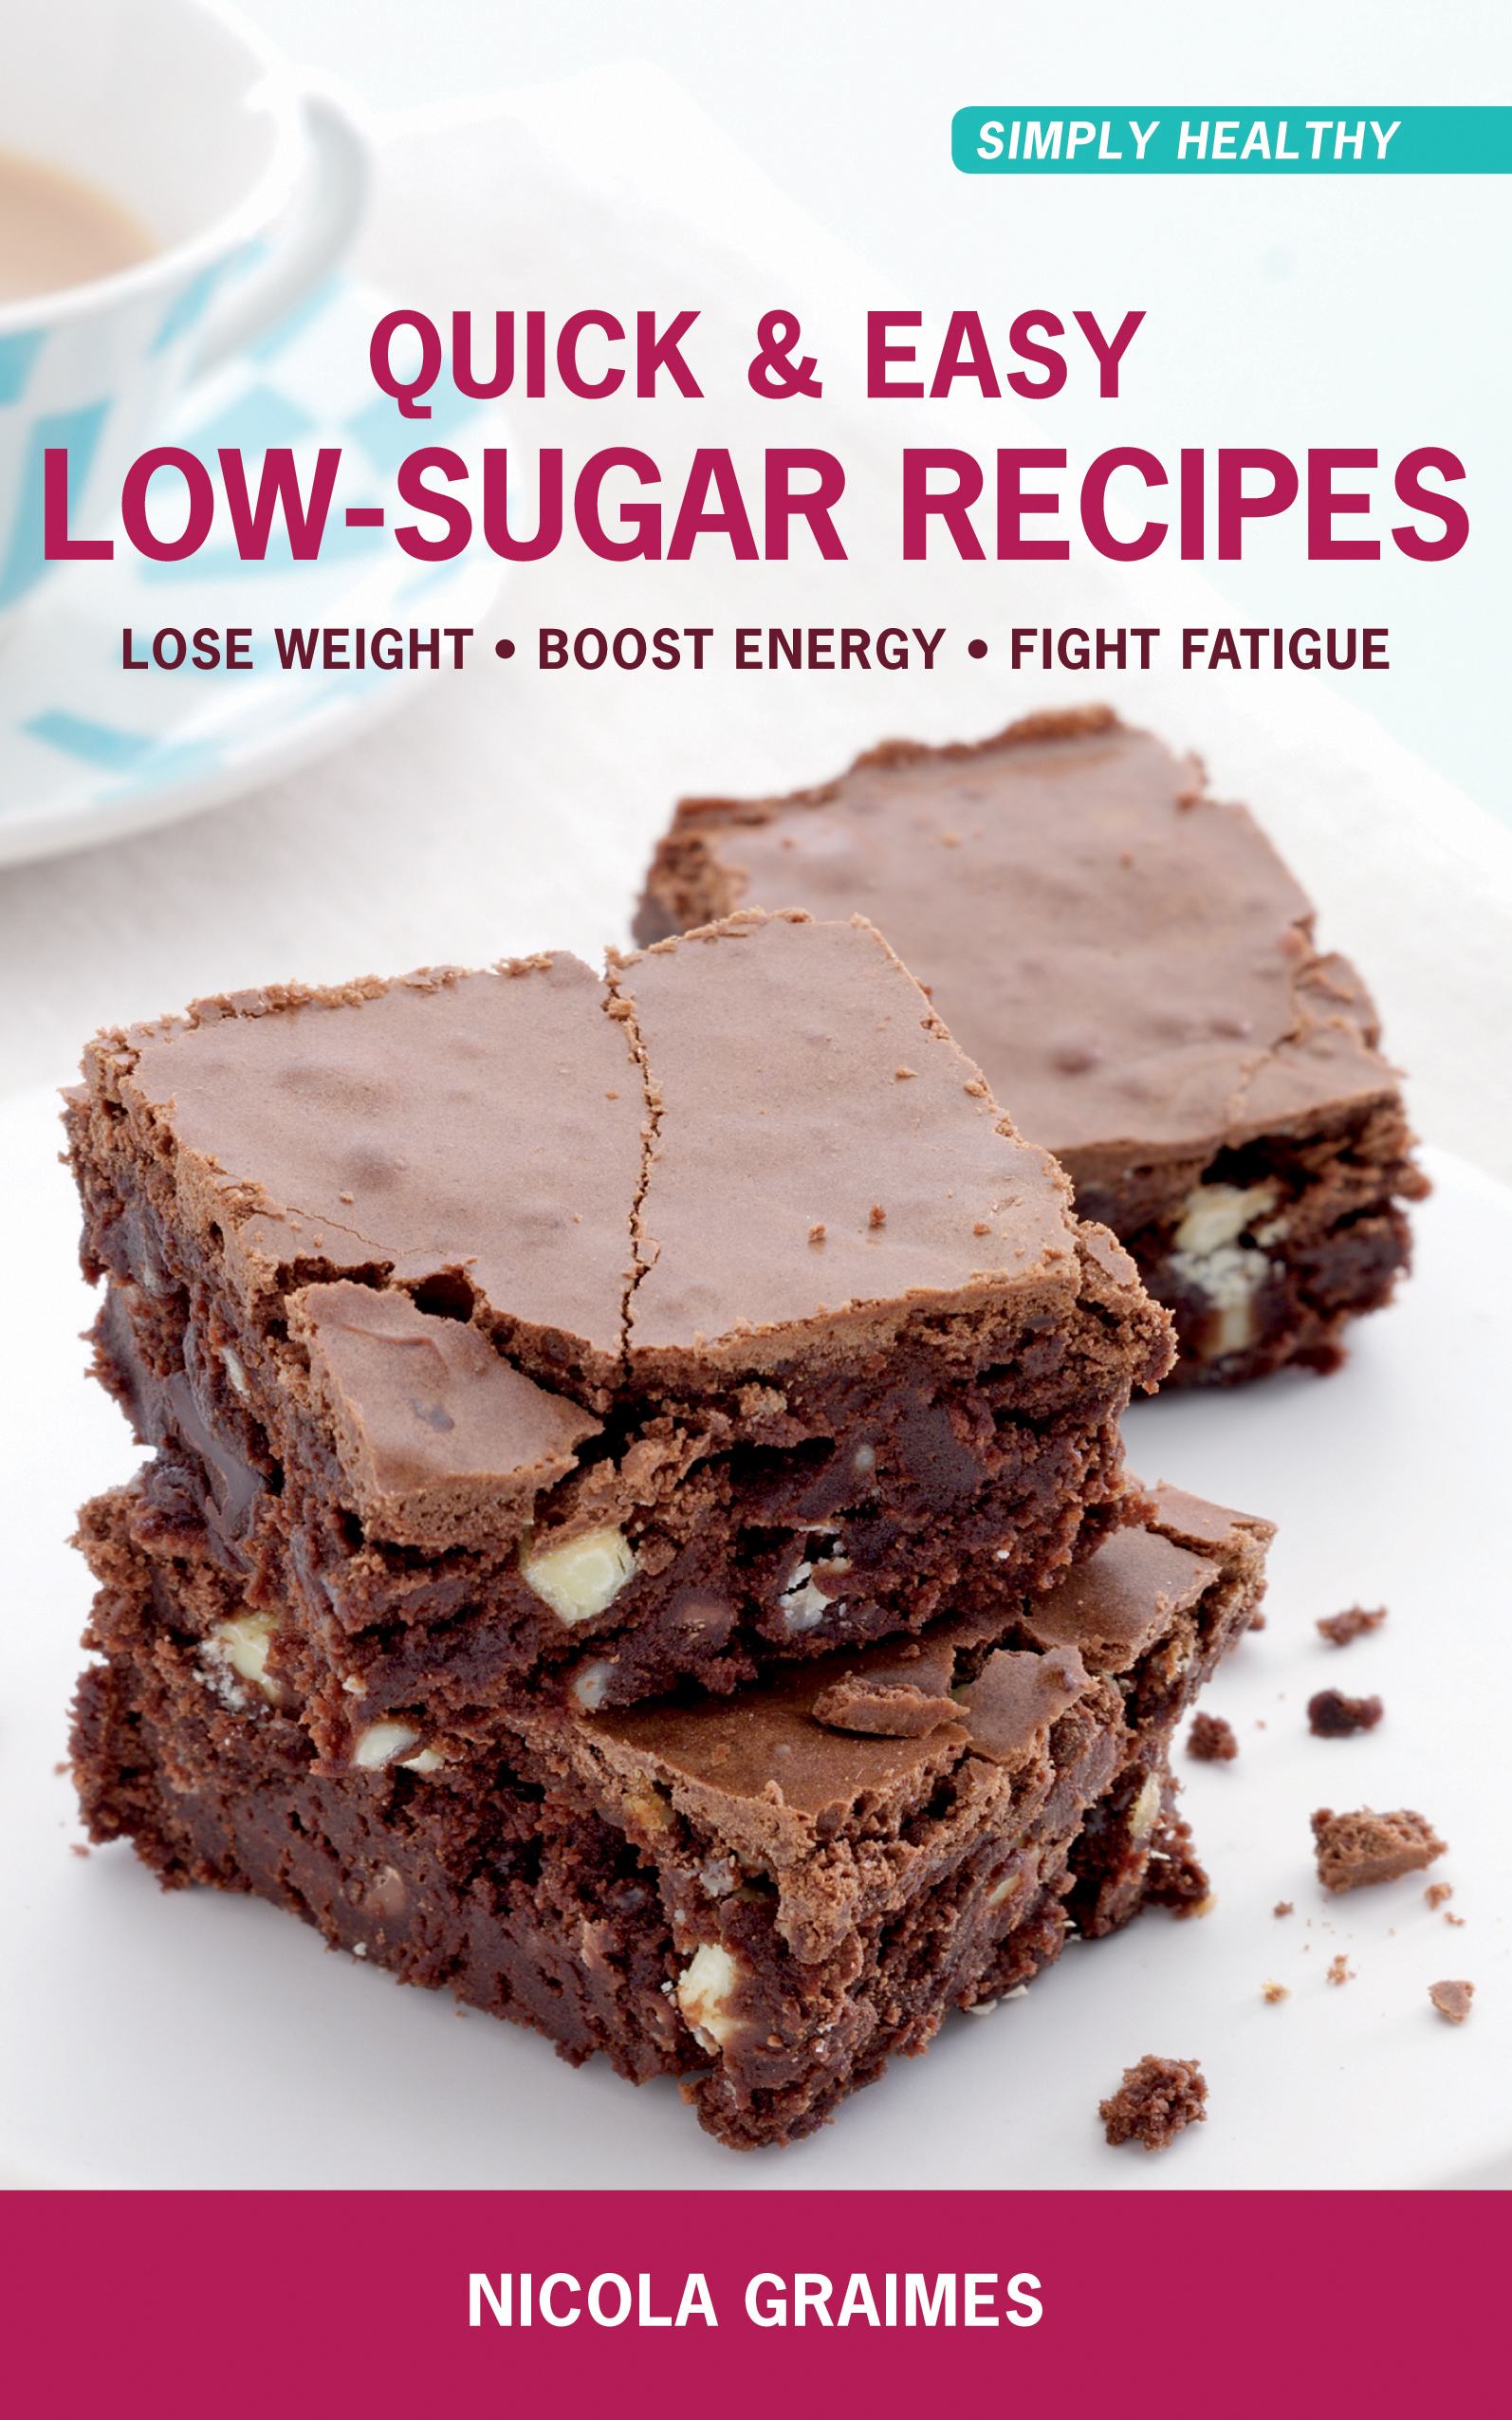 Quick & Easy Low-Sugar Recipes